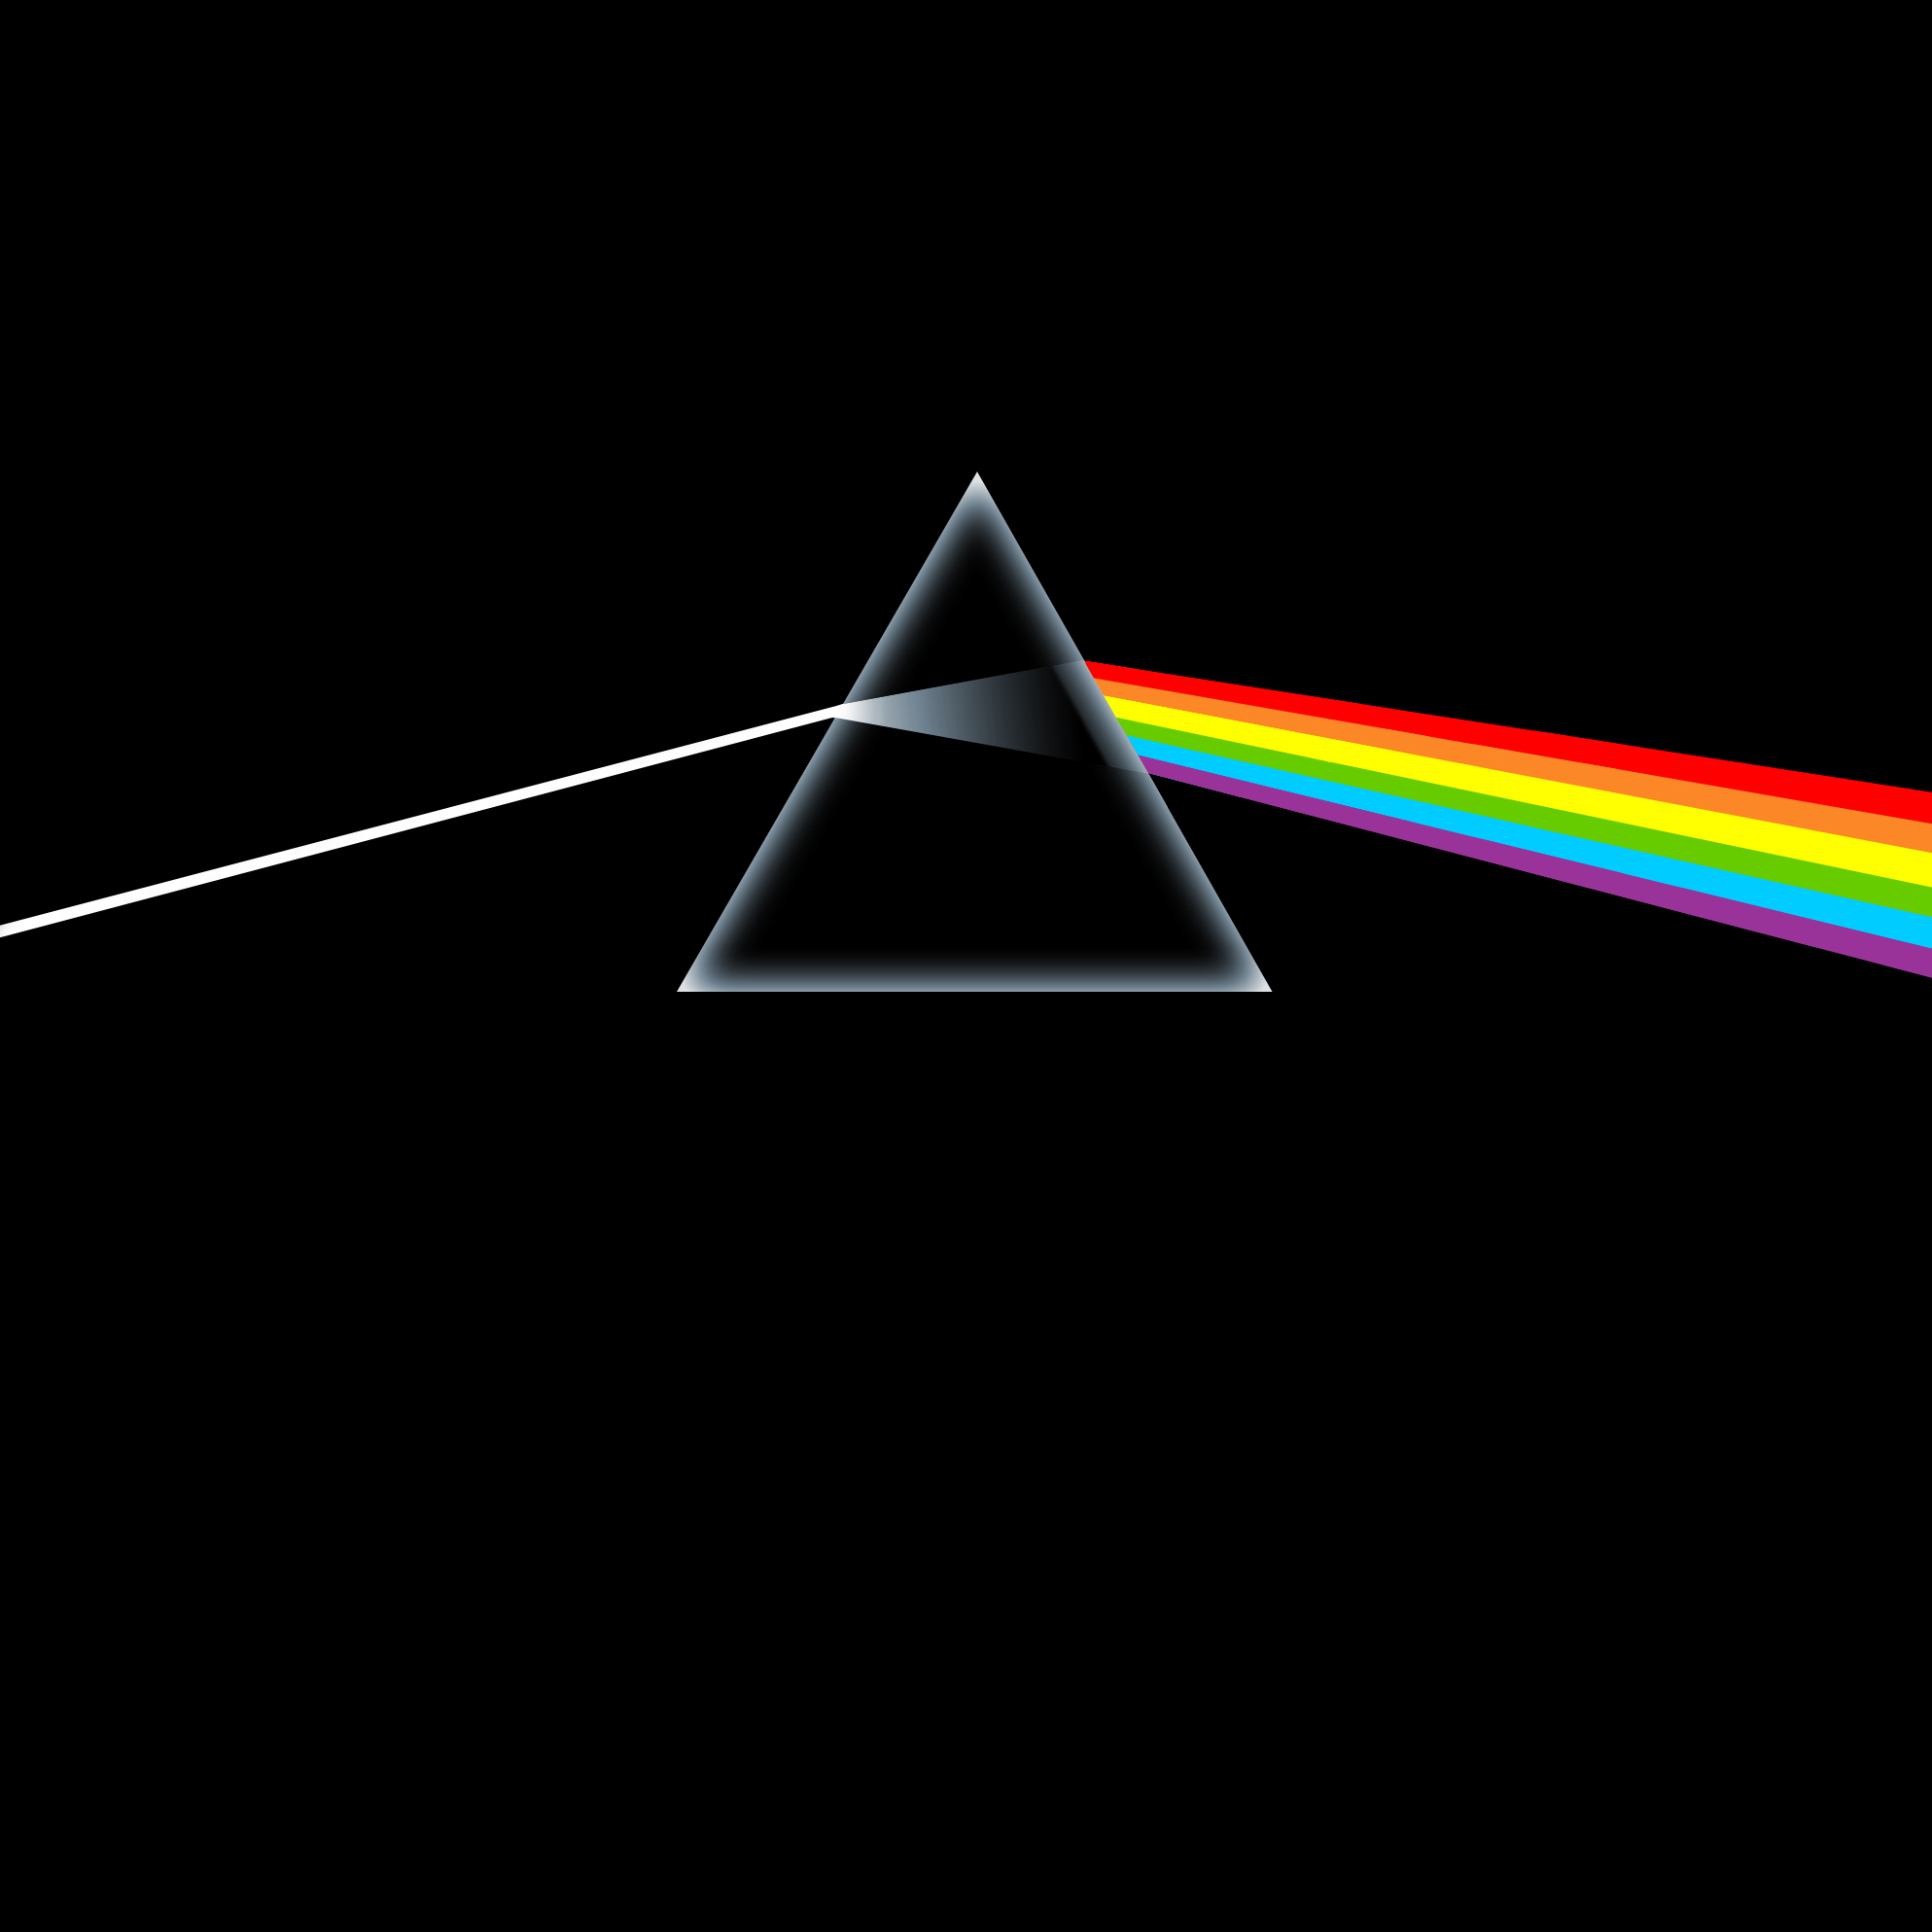 Dark Side Of The Moon (Incluye descarga)